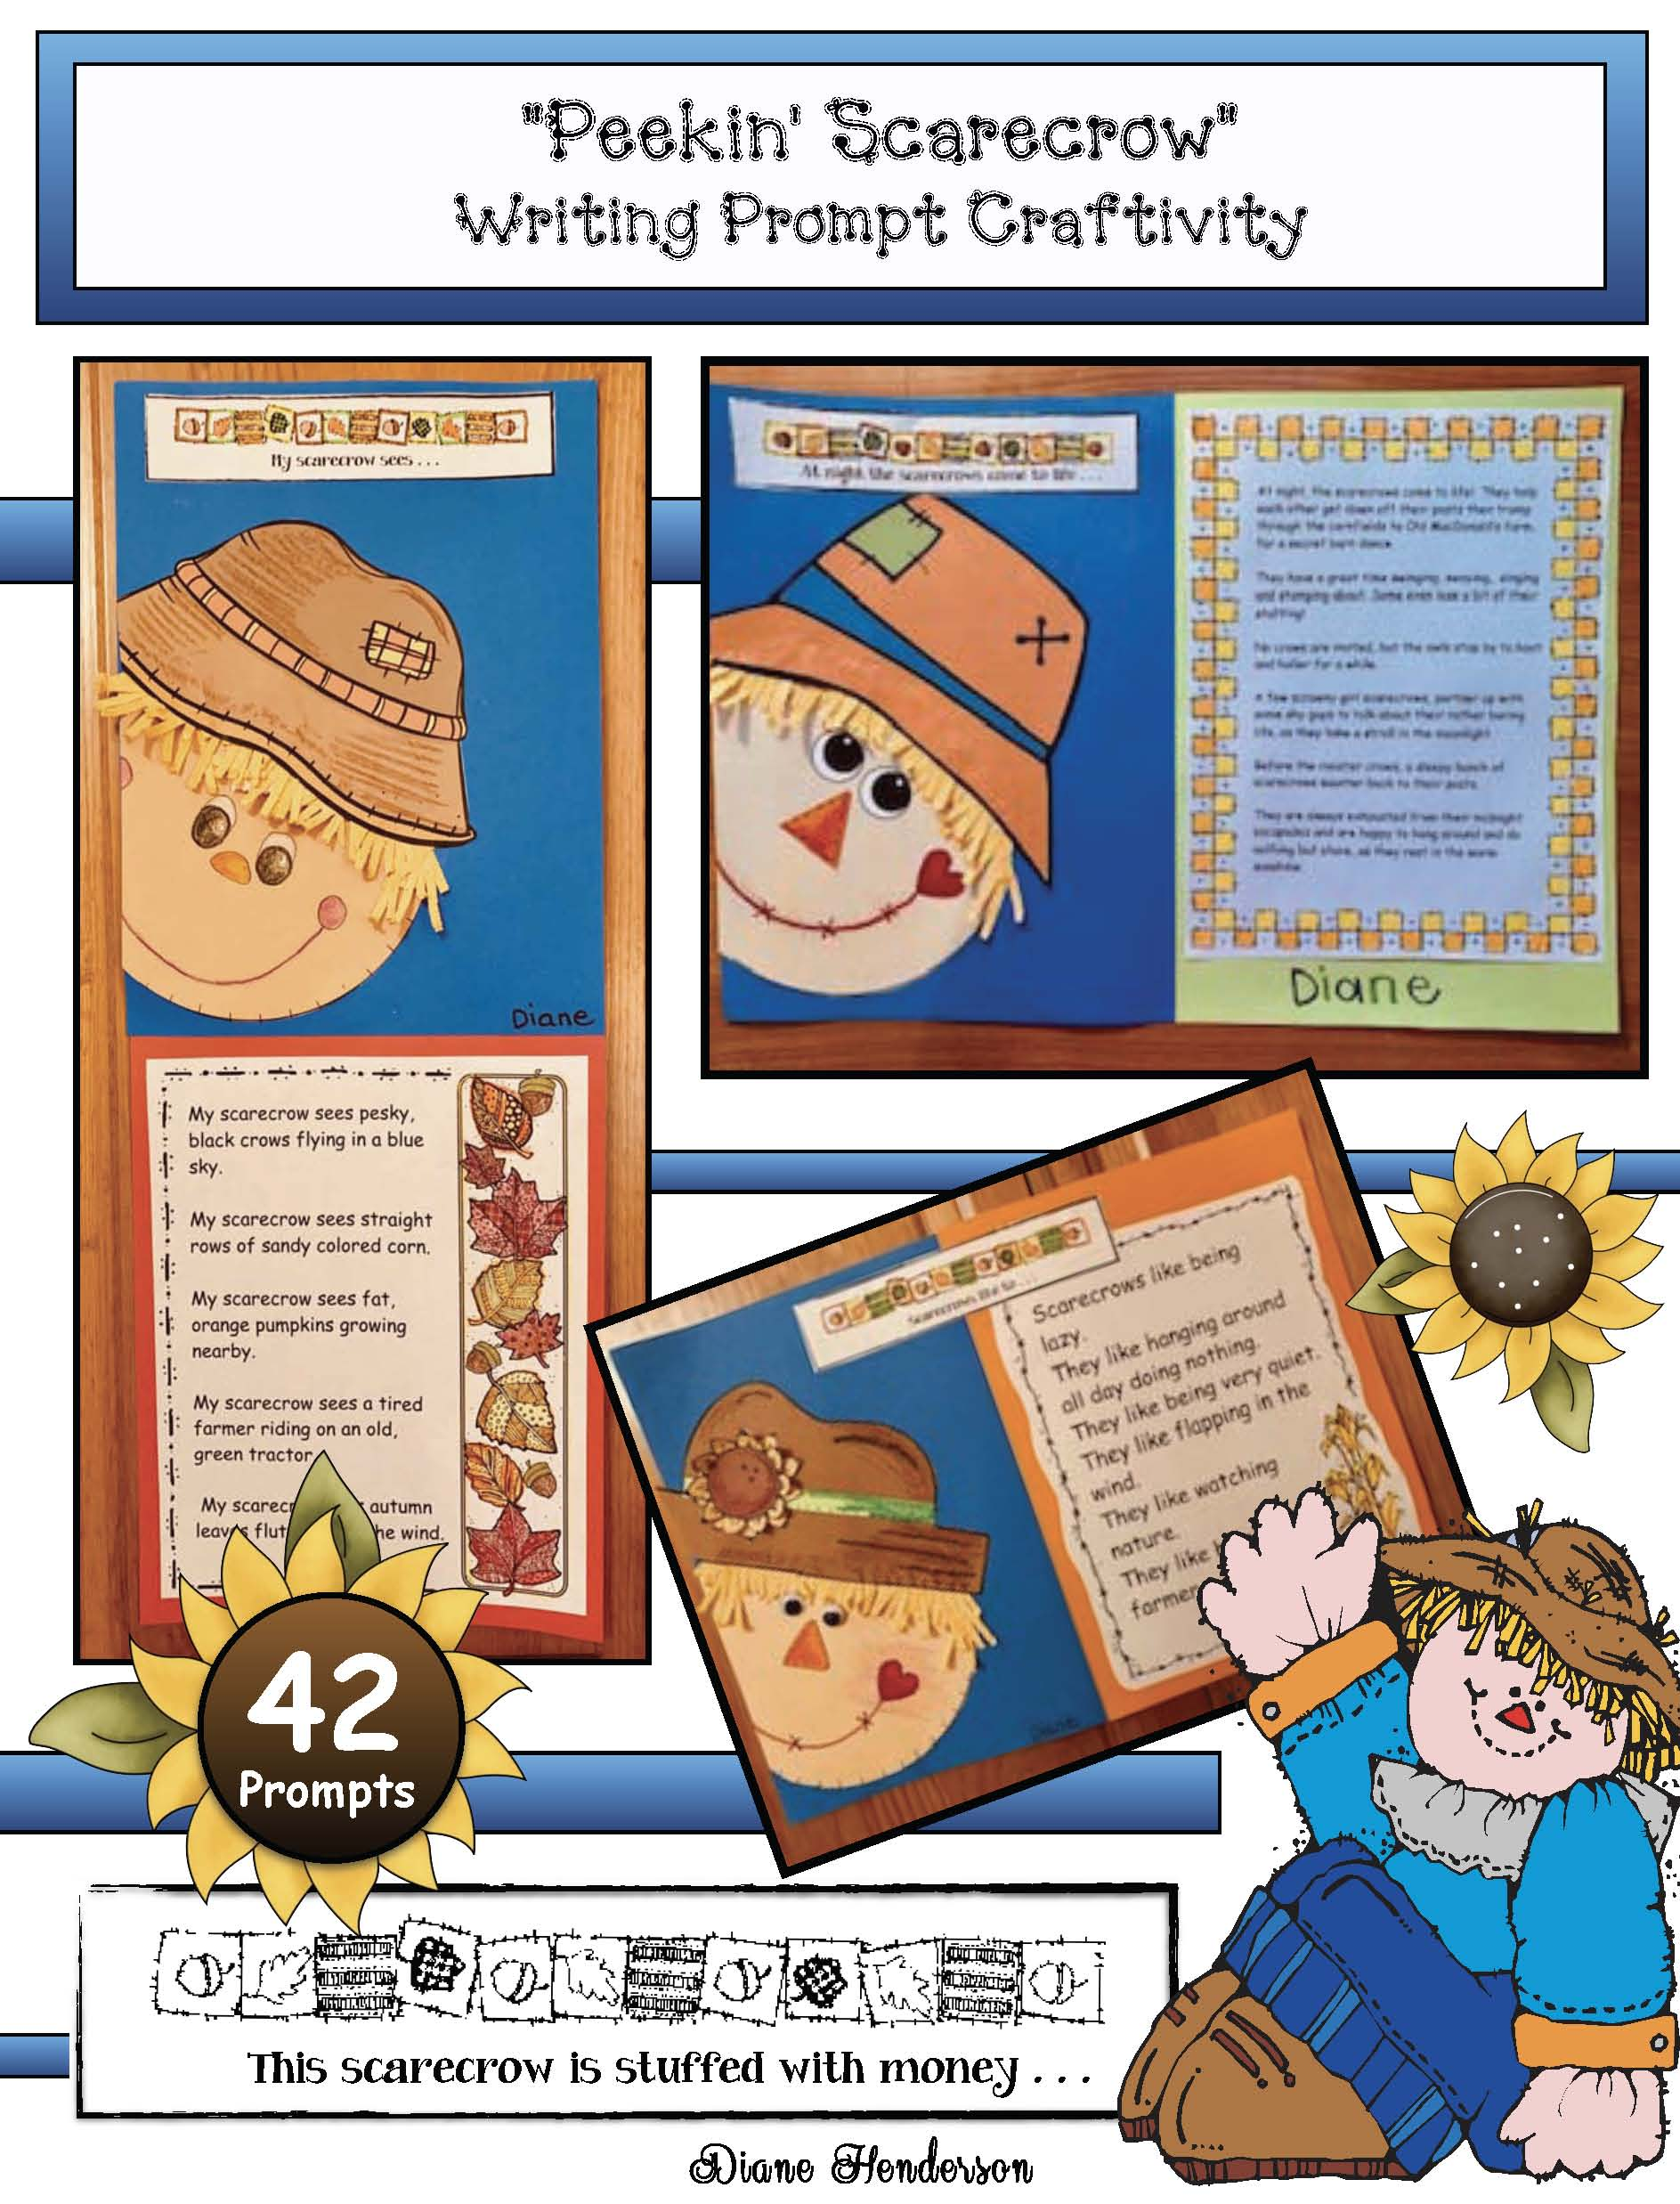 scarecrow acticities, scarecrow crafts, October writing prompts, November writing prompts, fall bulletin board ideas, October bulletin board ideas, November bulletin board ideas